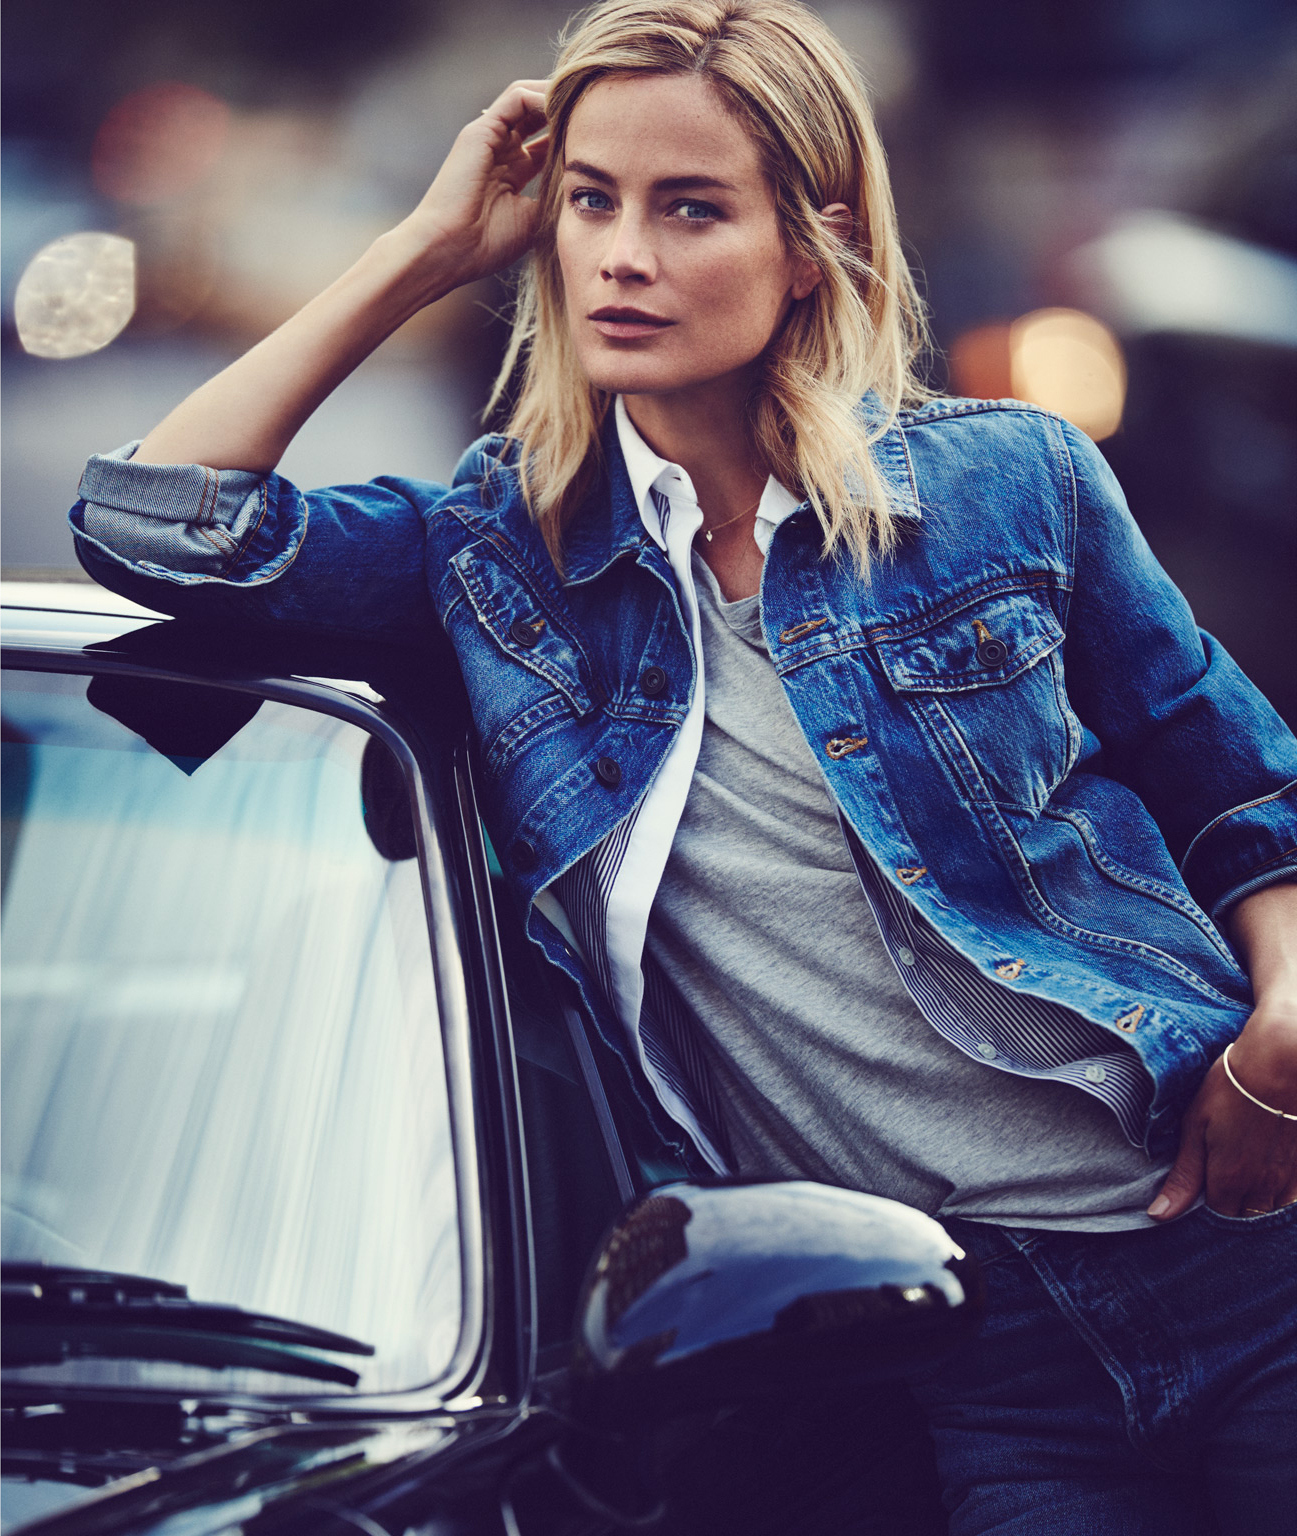 Img models carolyn murphy the edit may 2015 for Model maison 2016